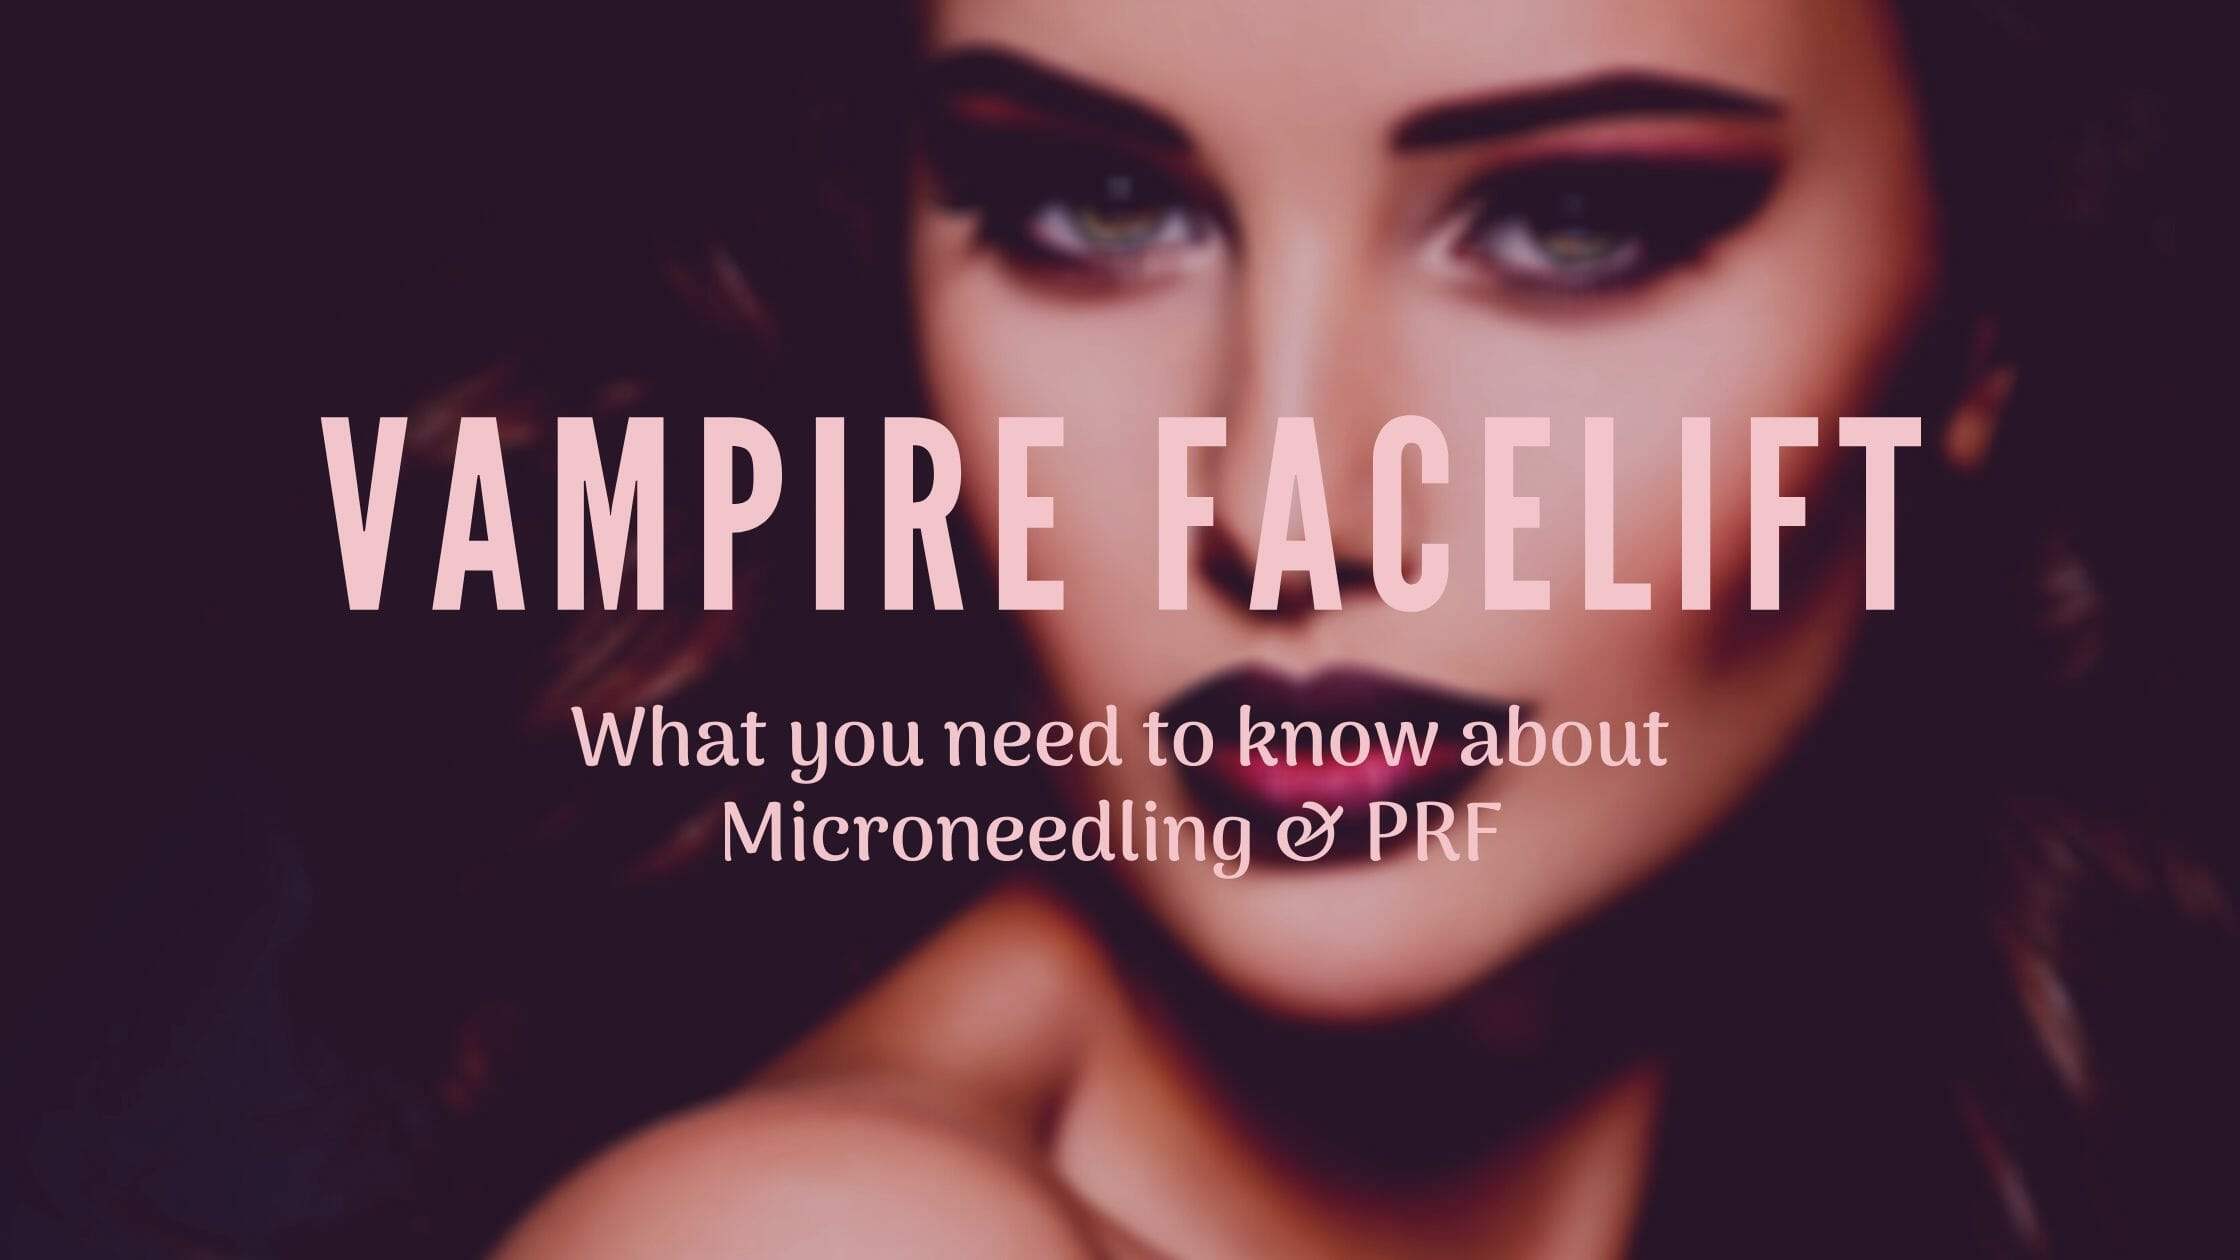 Vampire Facelift - What you need to know